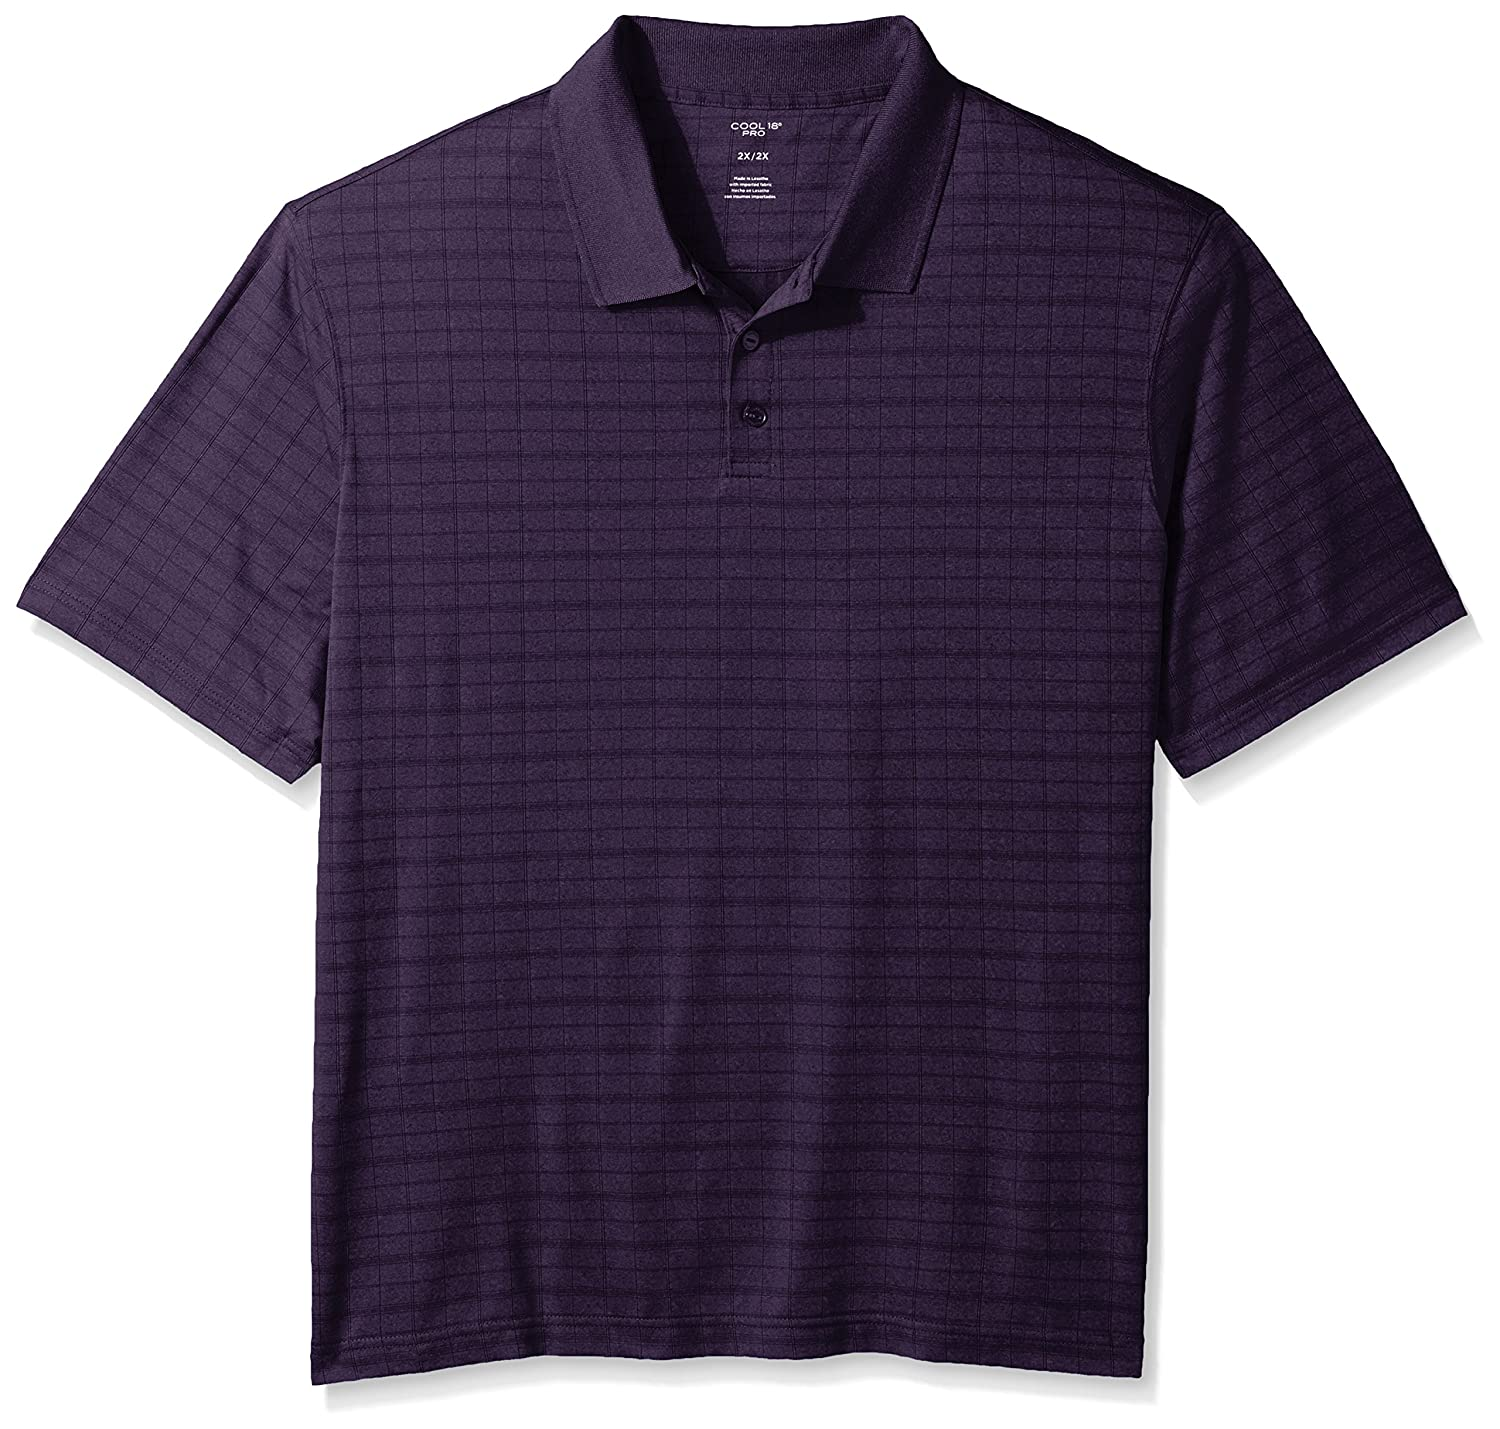 Haggar Mens Big and Tall Big/&Tall Short Sleeve Marled Knit Polo